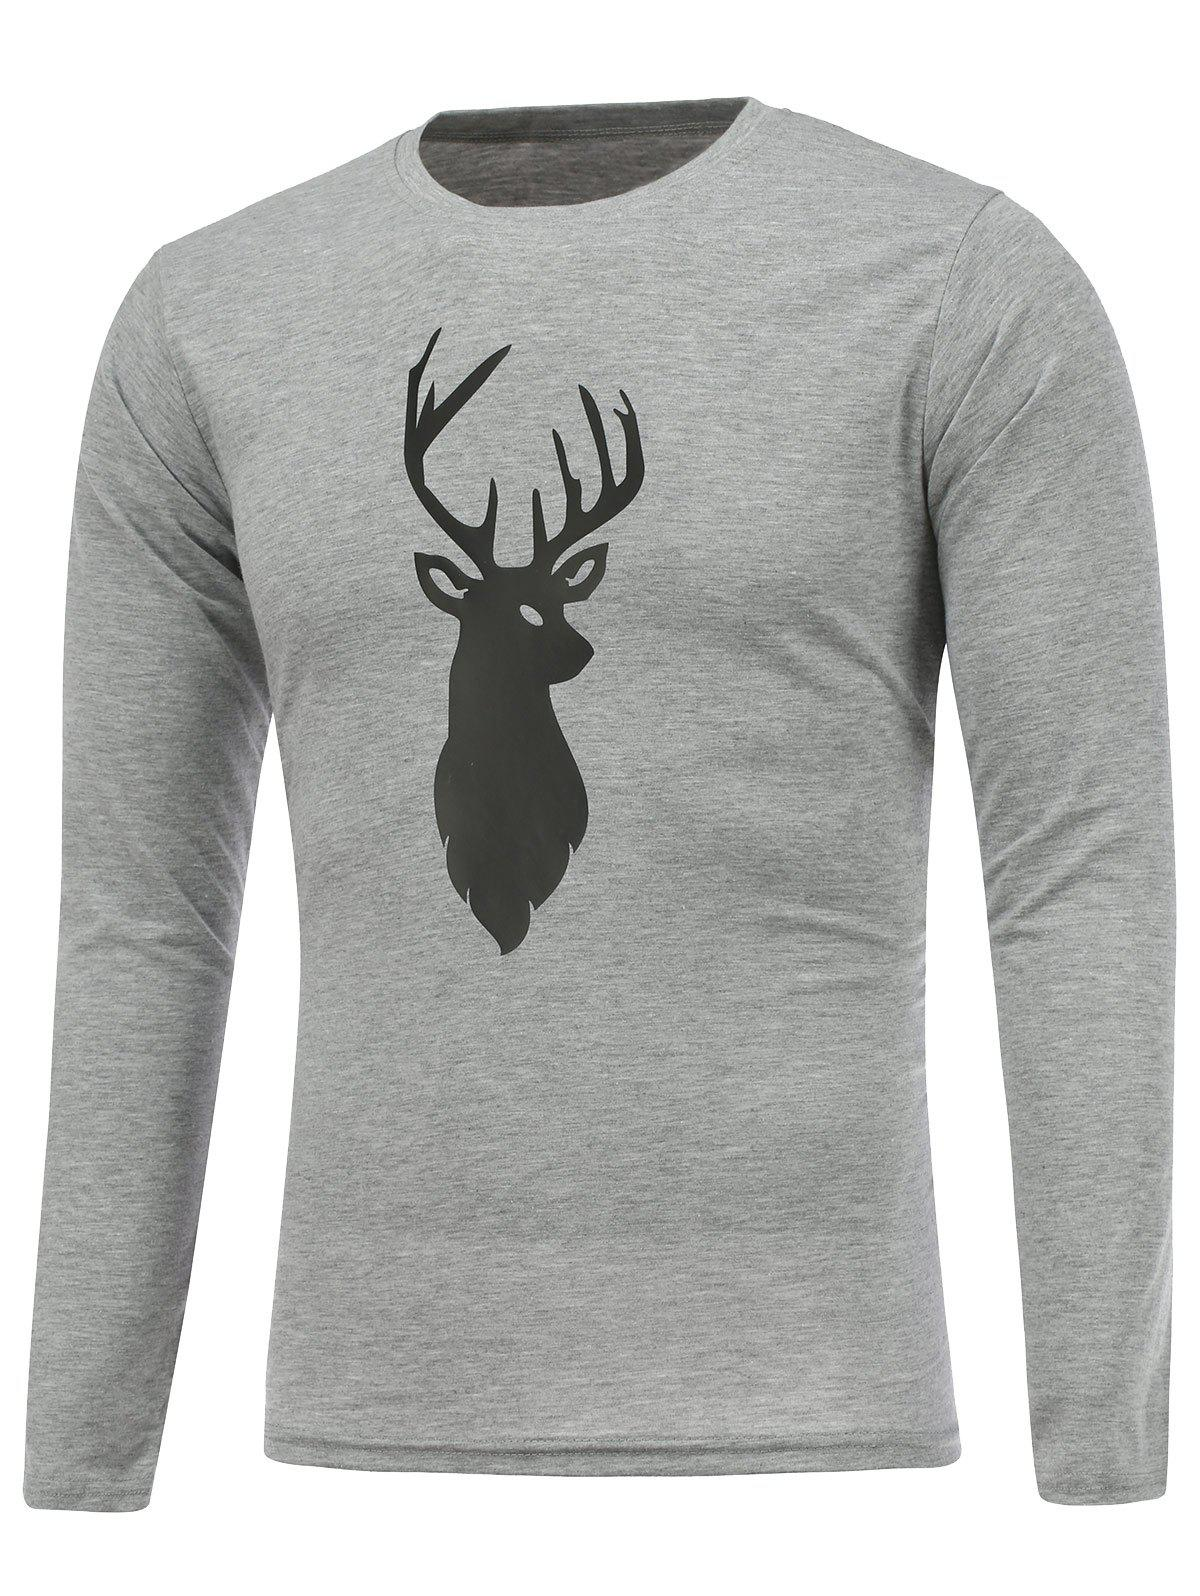 Crew Neck Deer Print Christmas T-Shirt - GRAY L